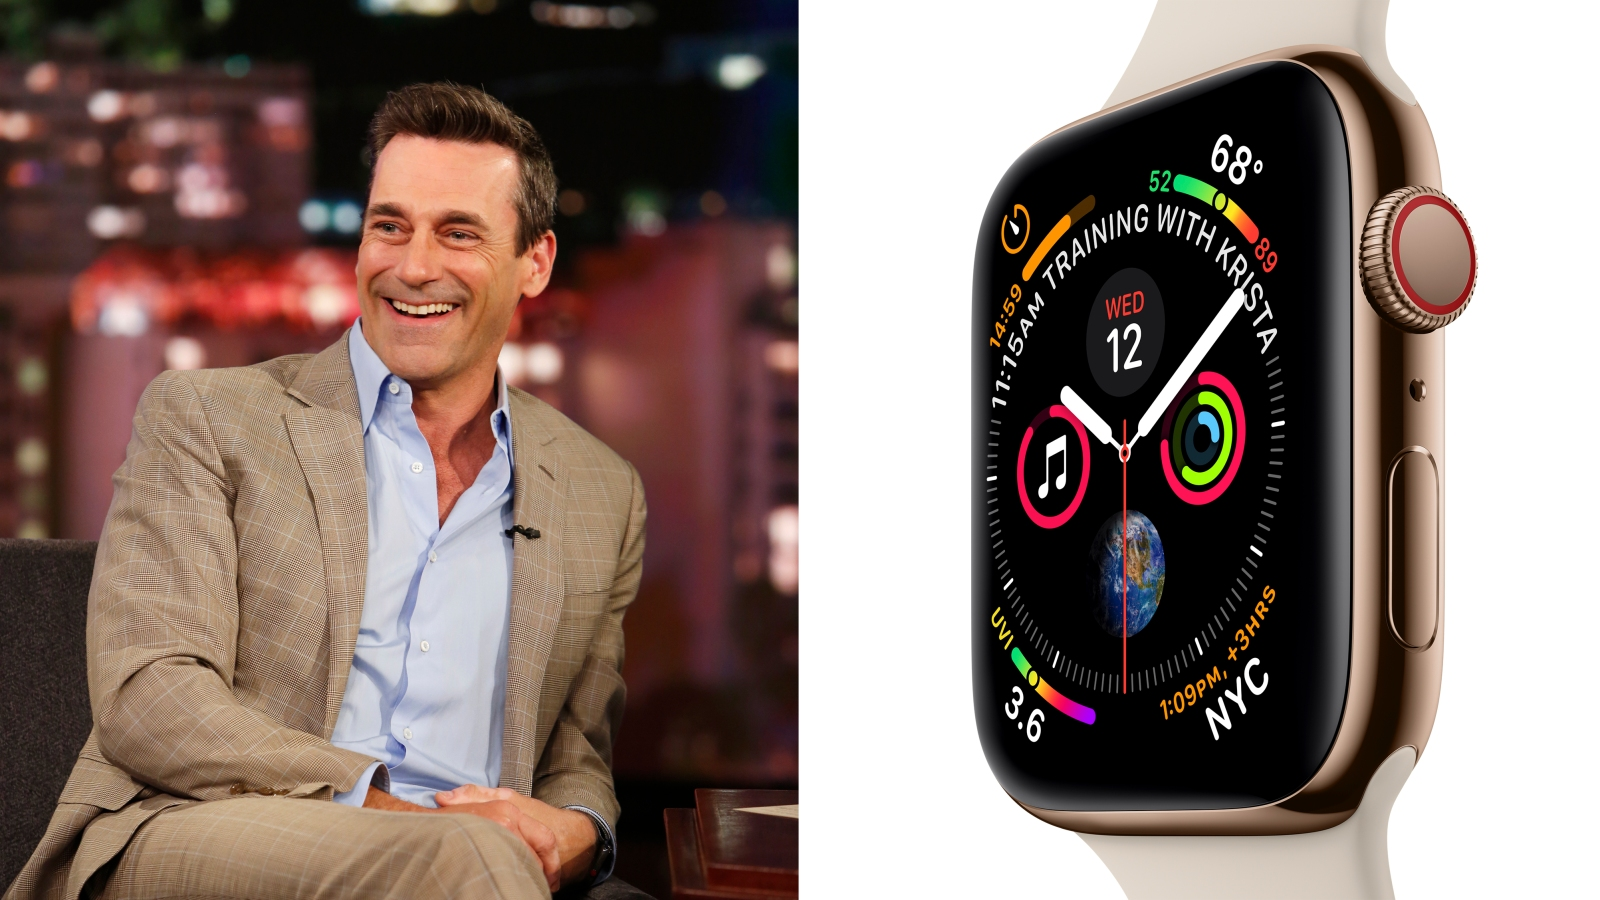 Apple Watch Series 4 Heres What Jon Hamm Thinks About The New Device